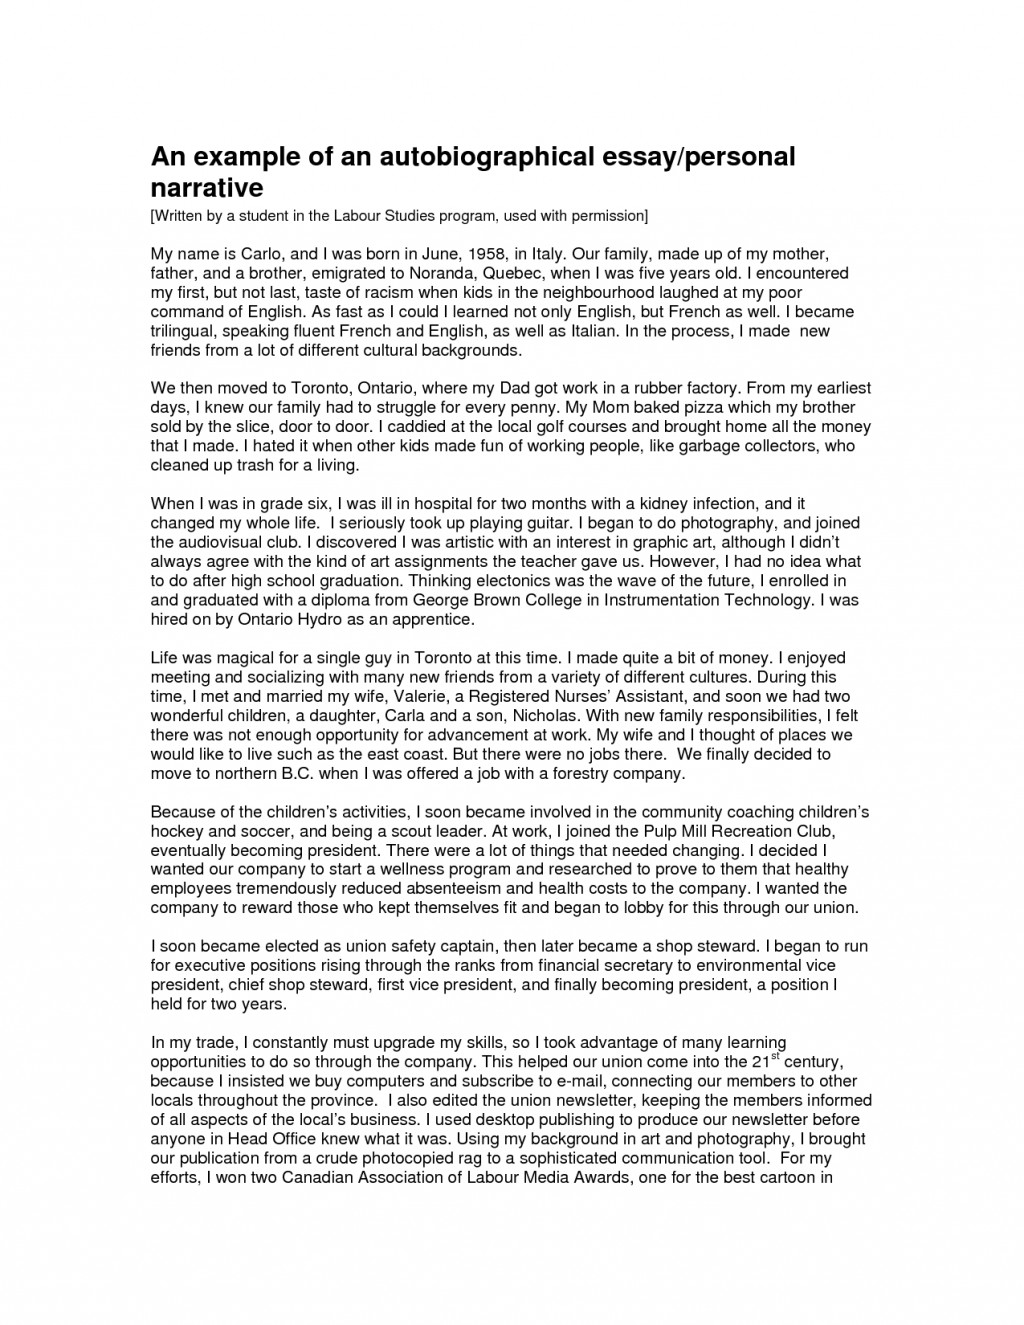 001 Autobiography Essay Example Unique Of About Yourself Tagalog Bio For Students Large